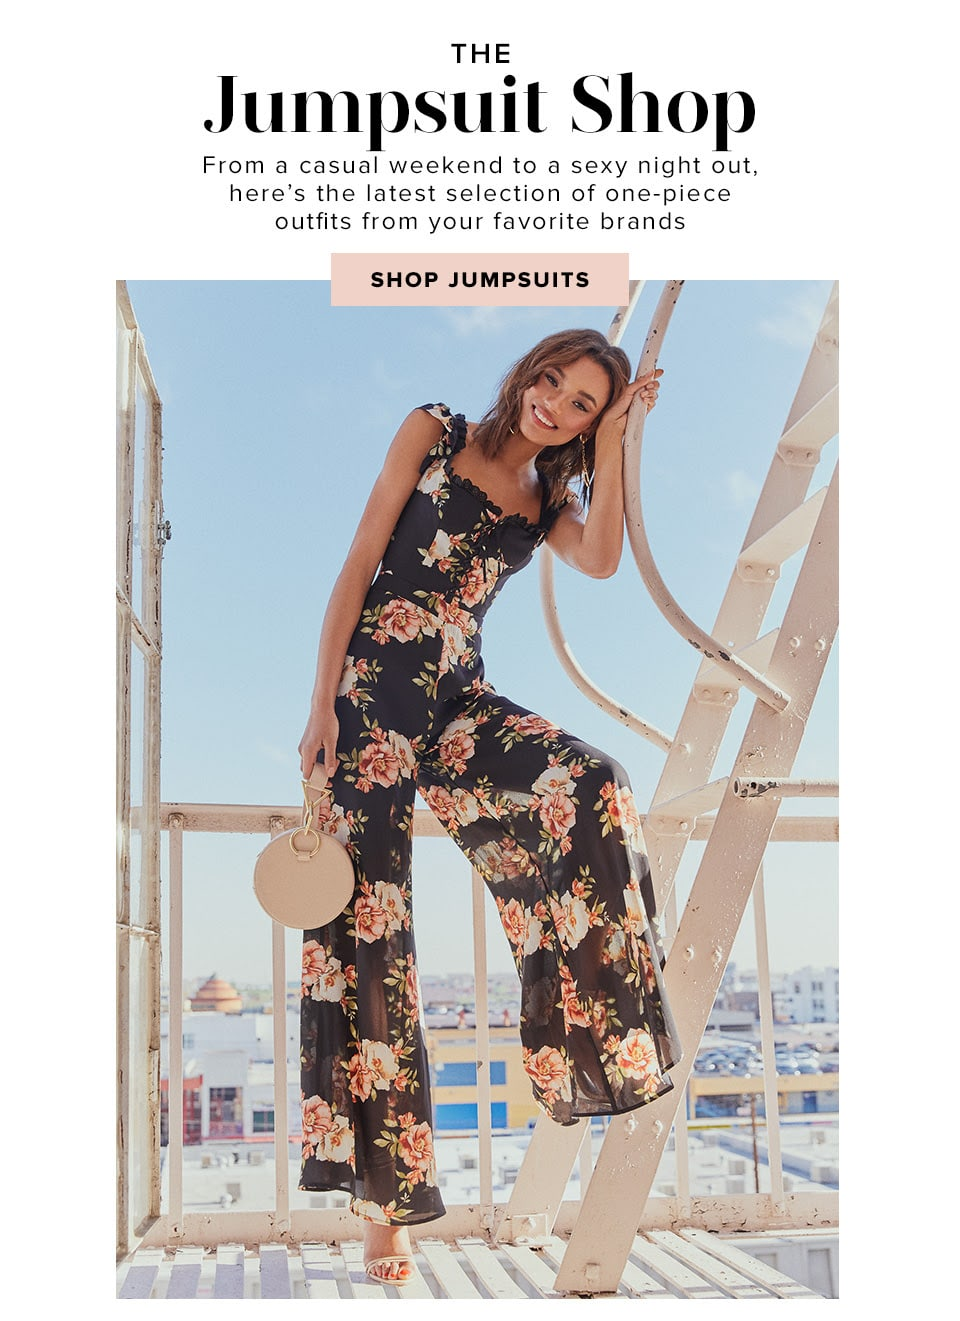 The Jumpsuit Shop. From a casual weekend to a sexy night out, here's the latest selection of one-piece outfits from your favorite brands. Shop Now.